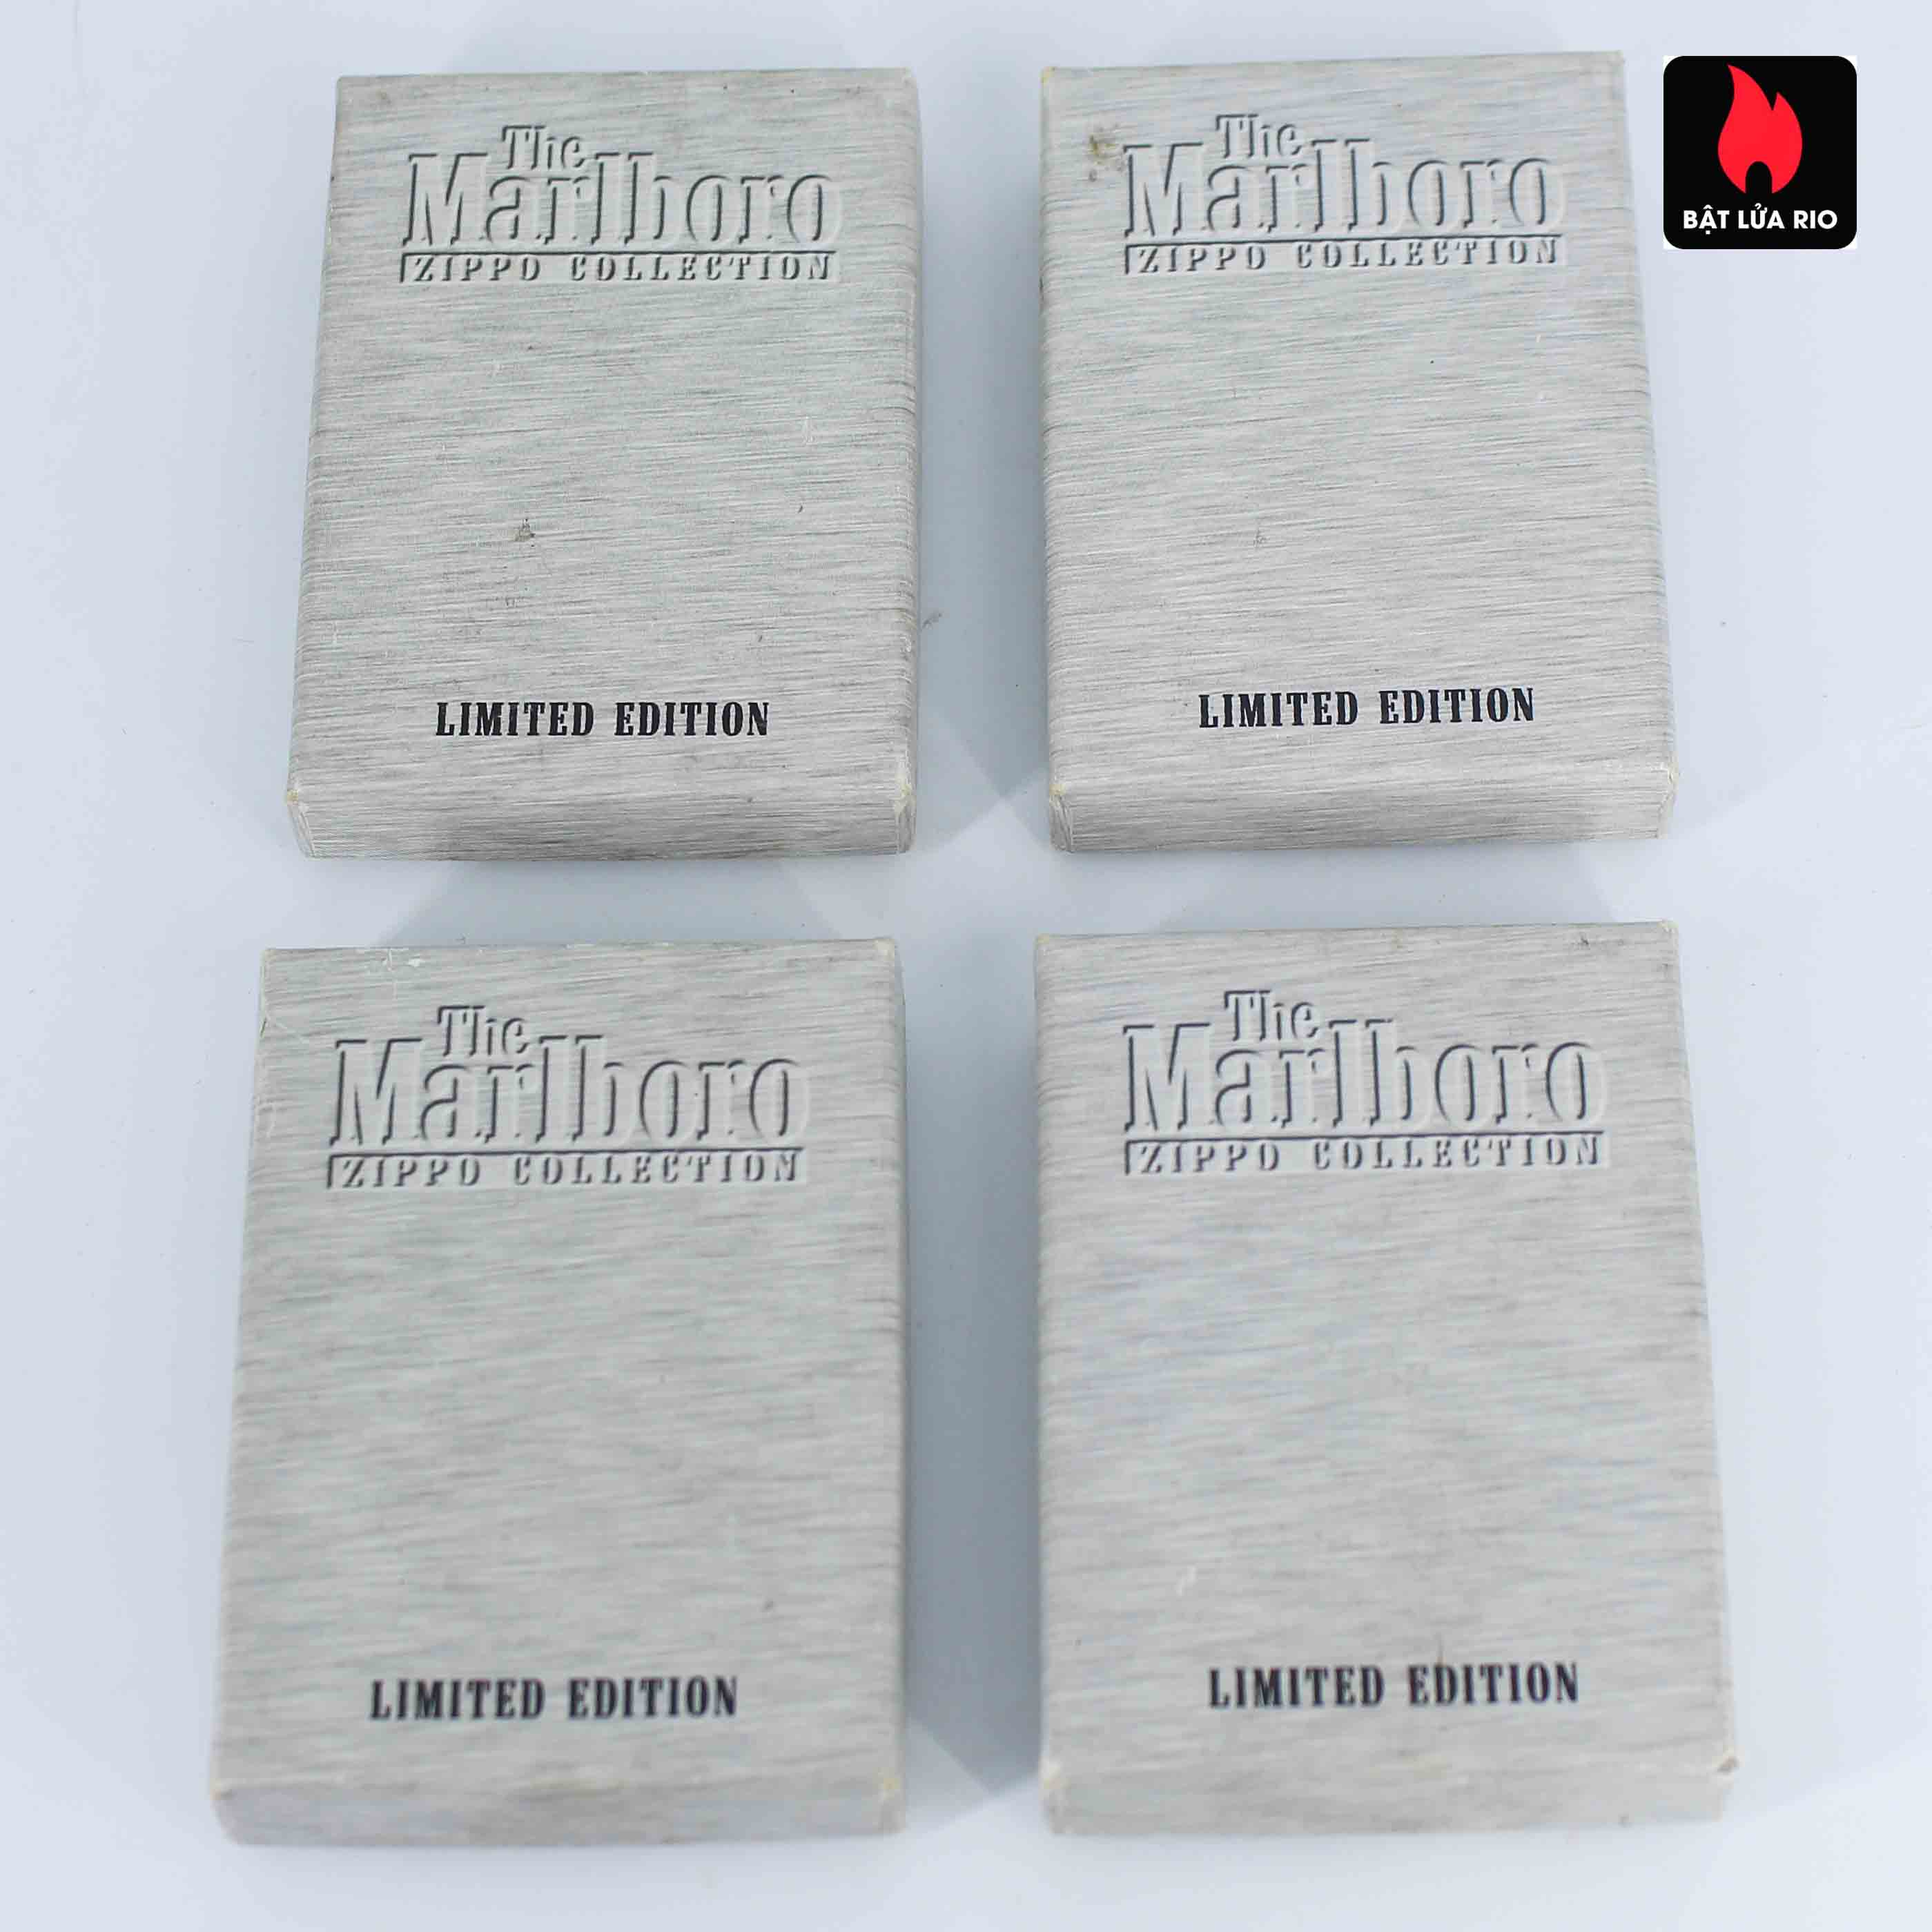 Zippo Set - Zippo 2000-2001 - Marlboro collection Limited Edition 4